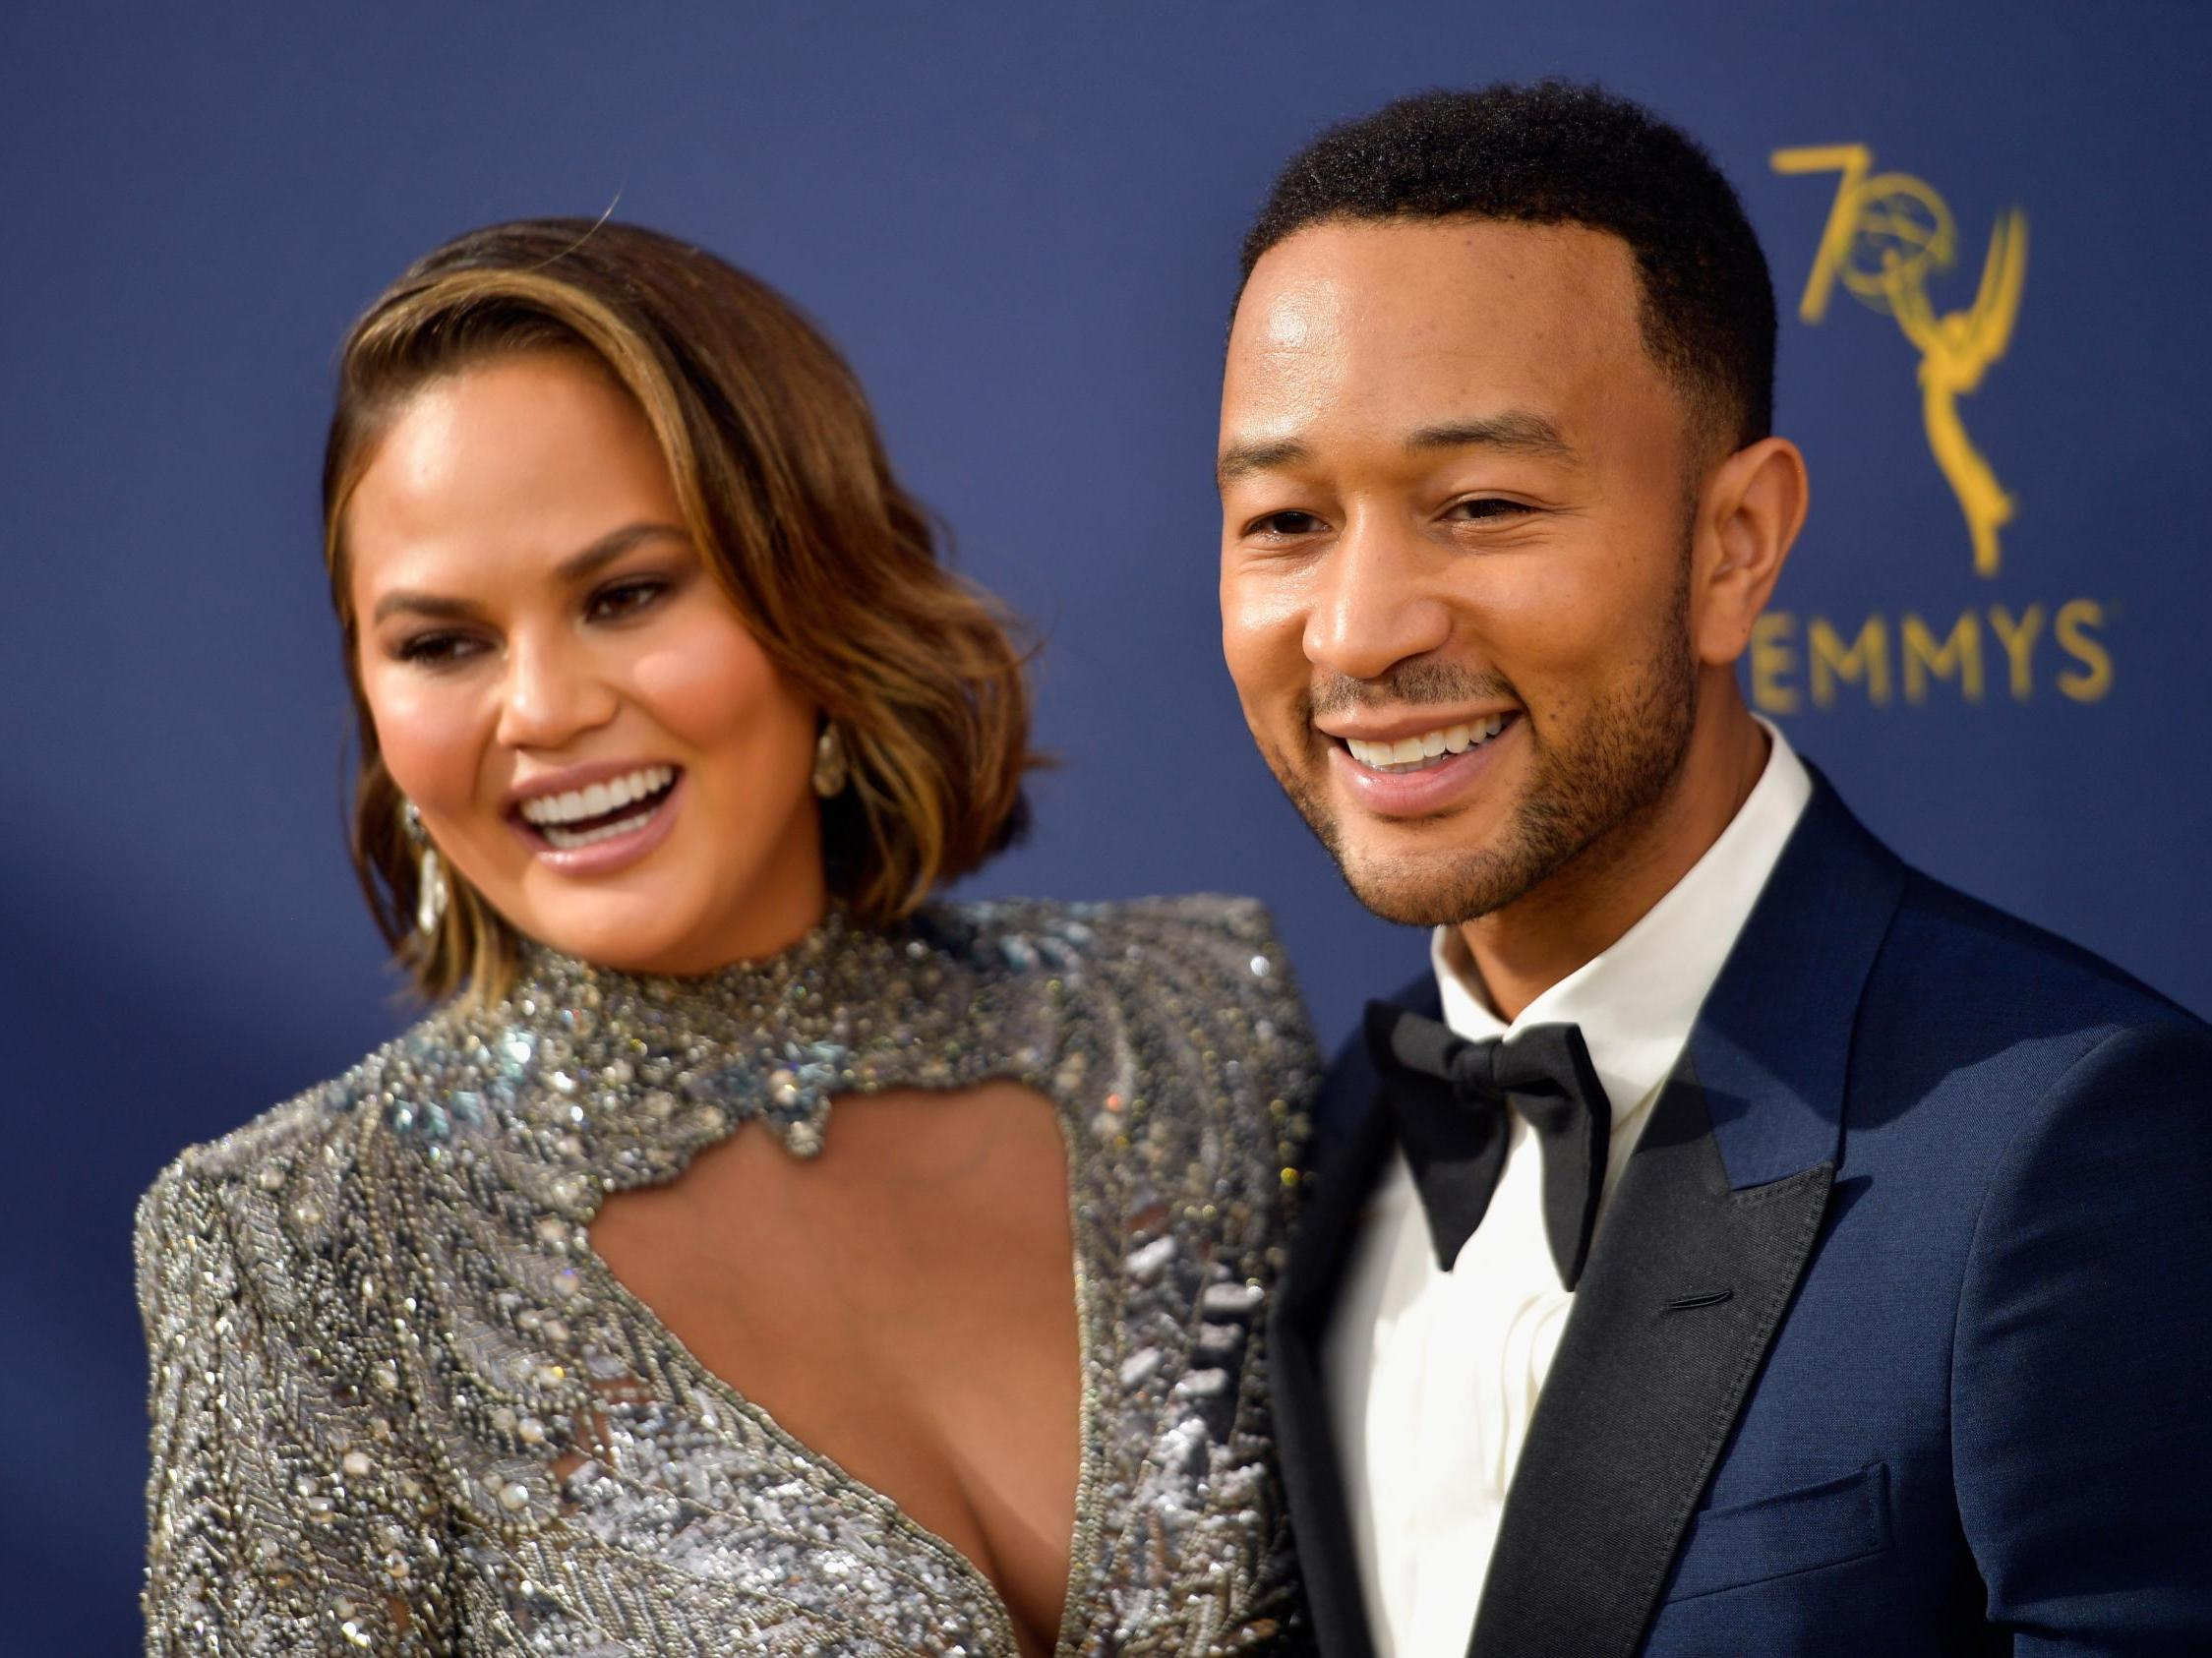 Chrissy Teigen says 'whole' Trump family deserve jail time as John Legend brands president 's****y human being'